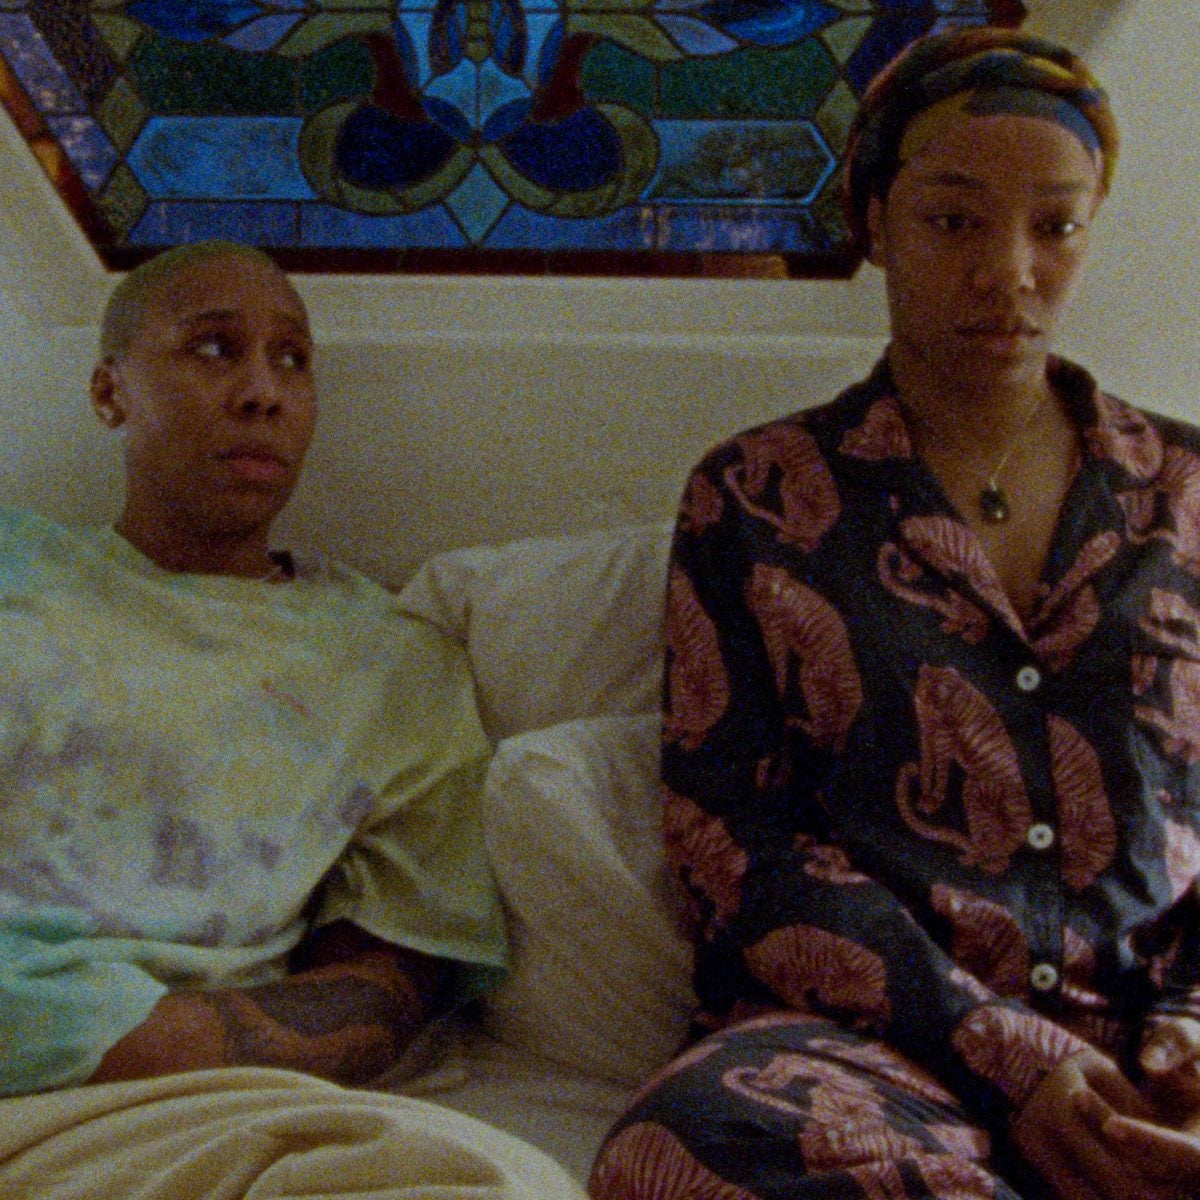 Naomi Ackie On 'Master Of None' Centering Black Queer Women This Season